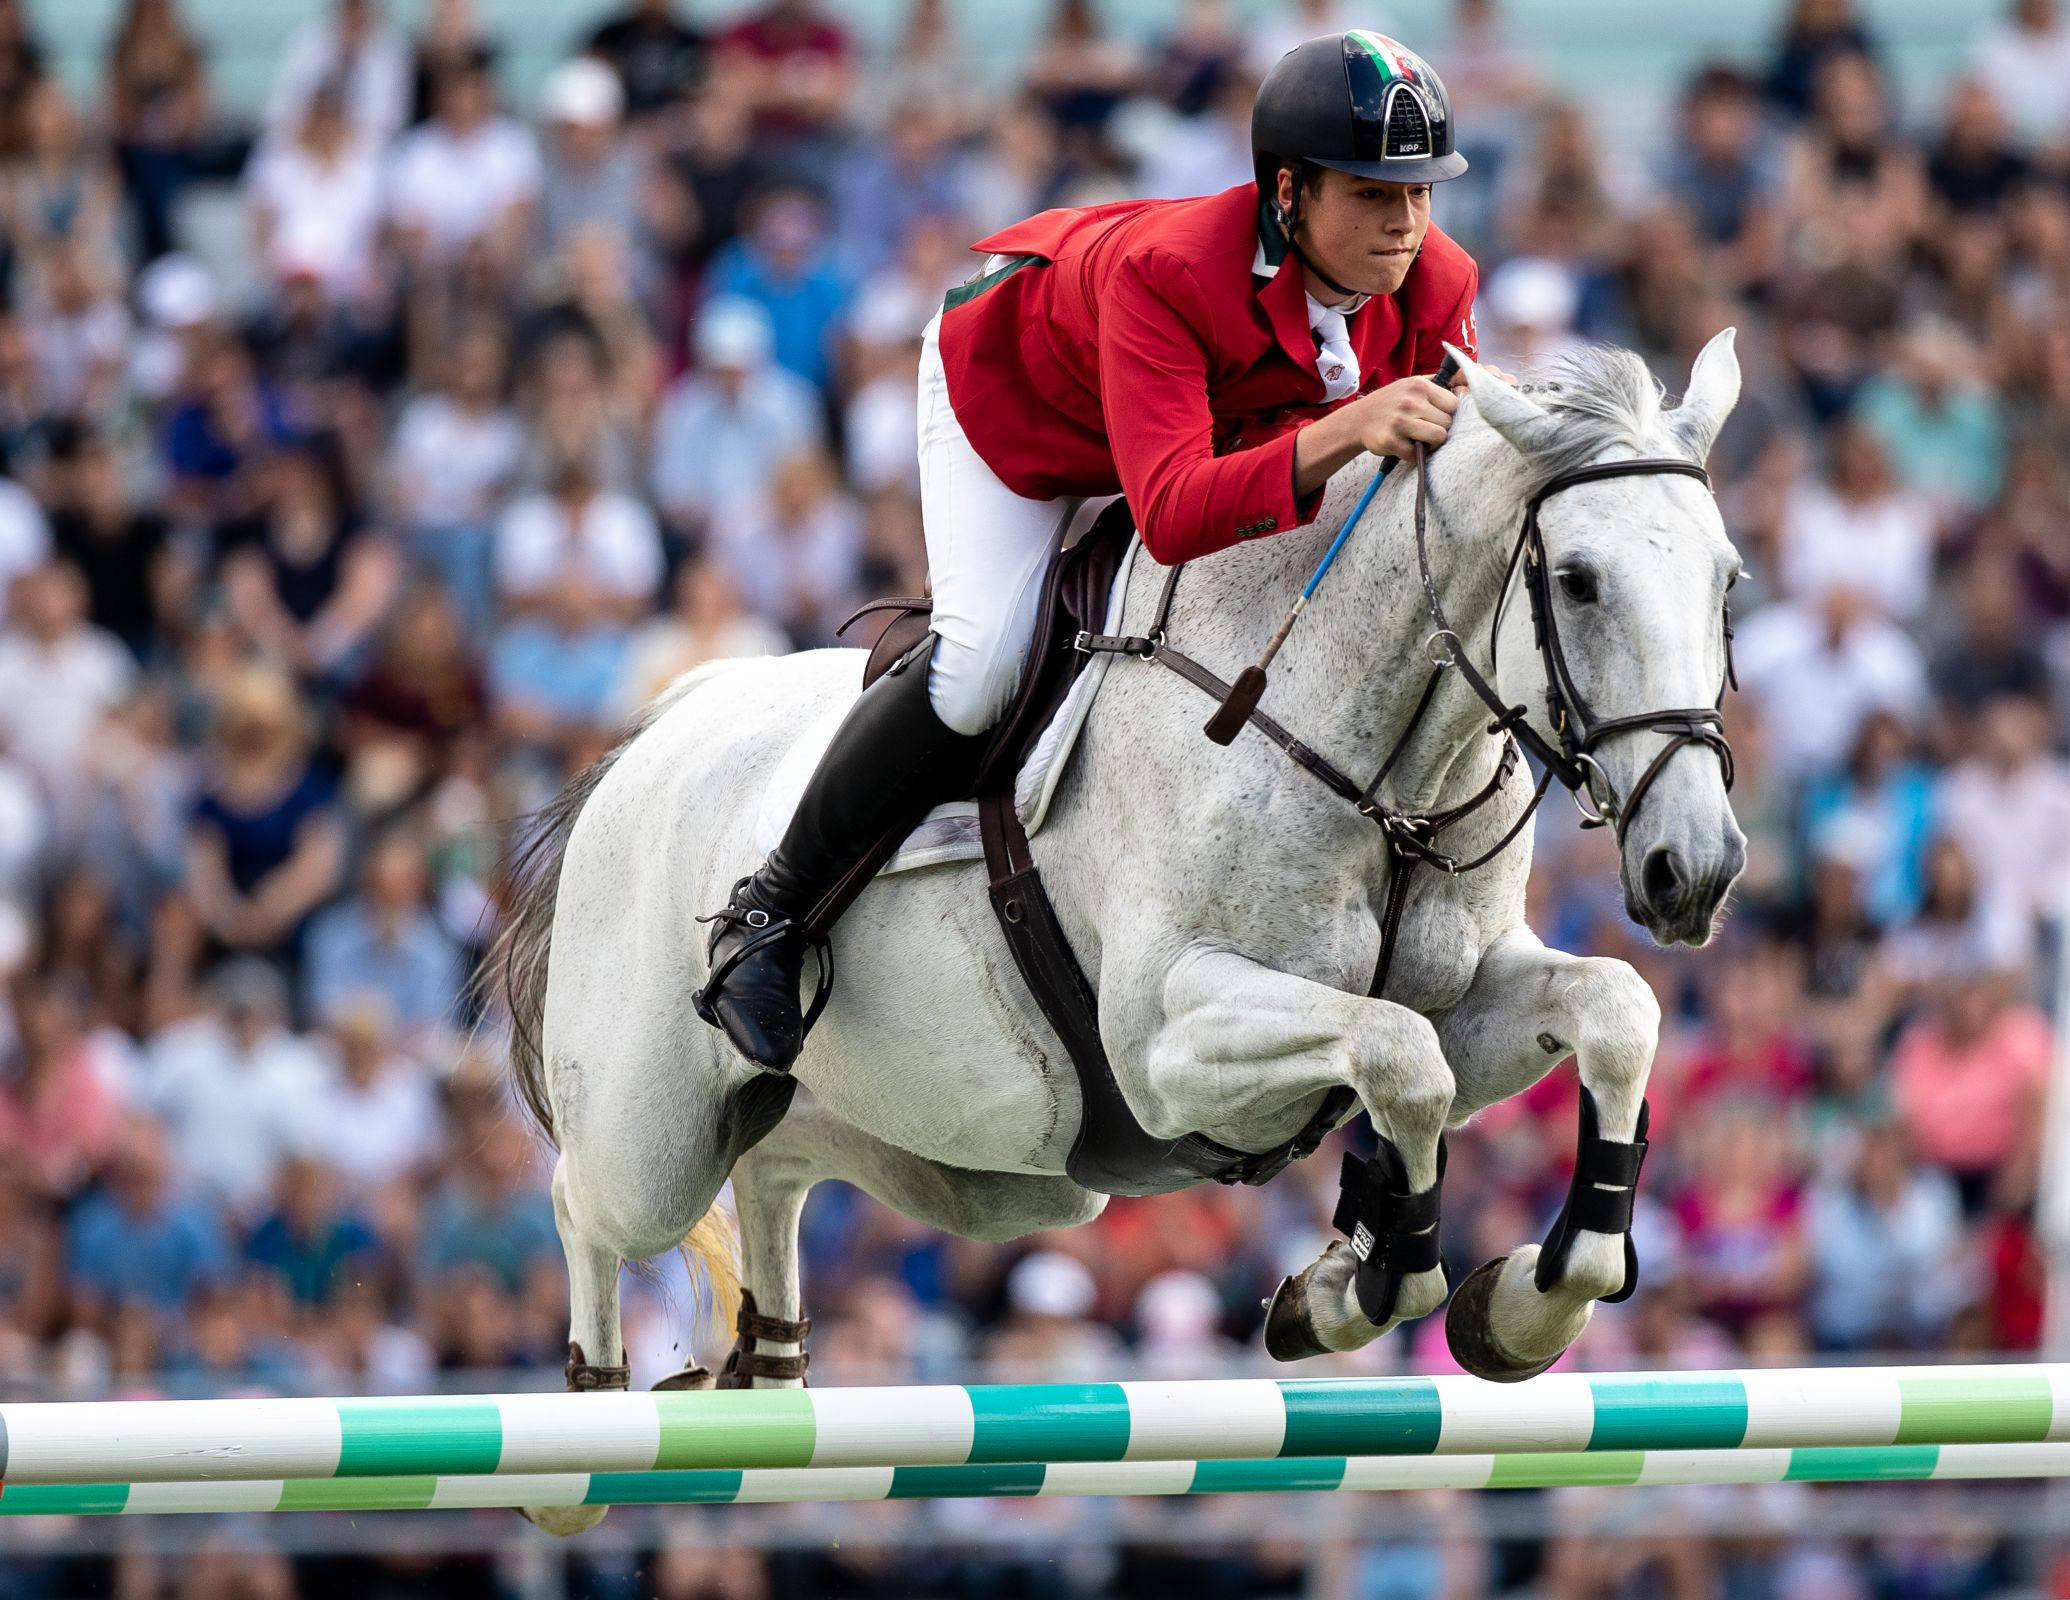 Buenos Aires 2018 - Equestrian - Jumping Individual